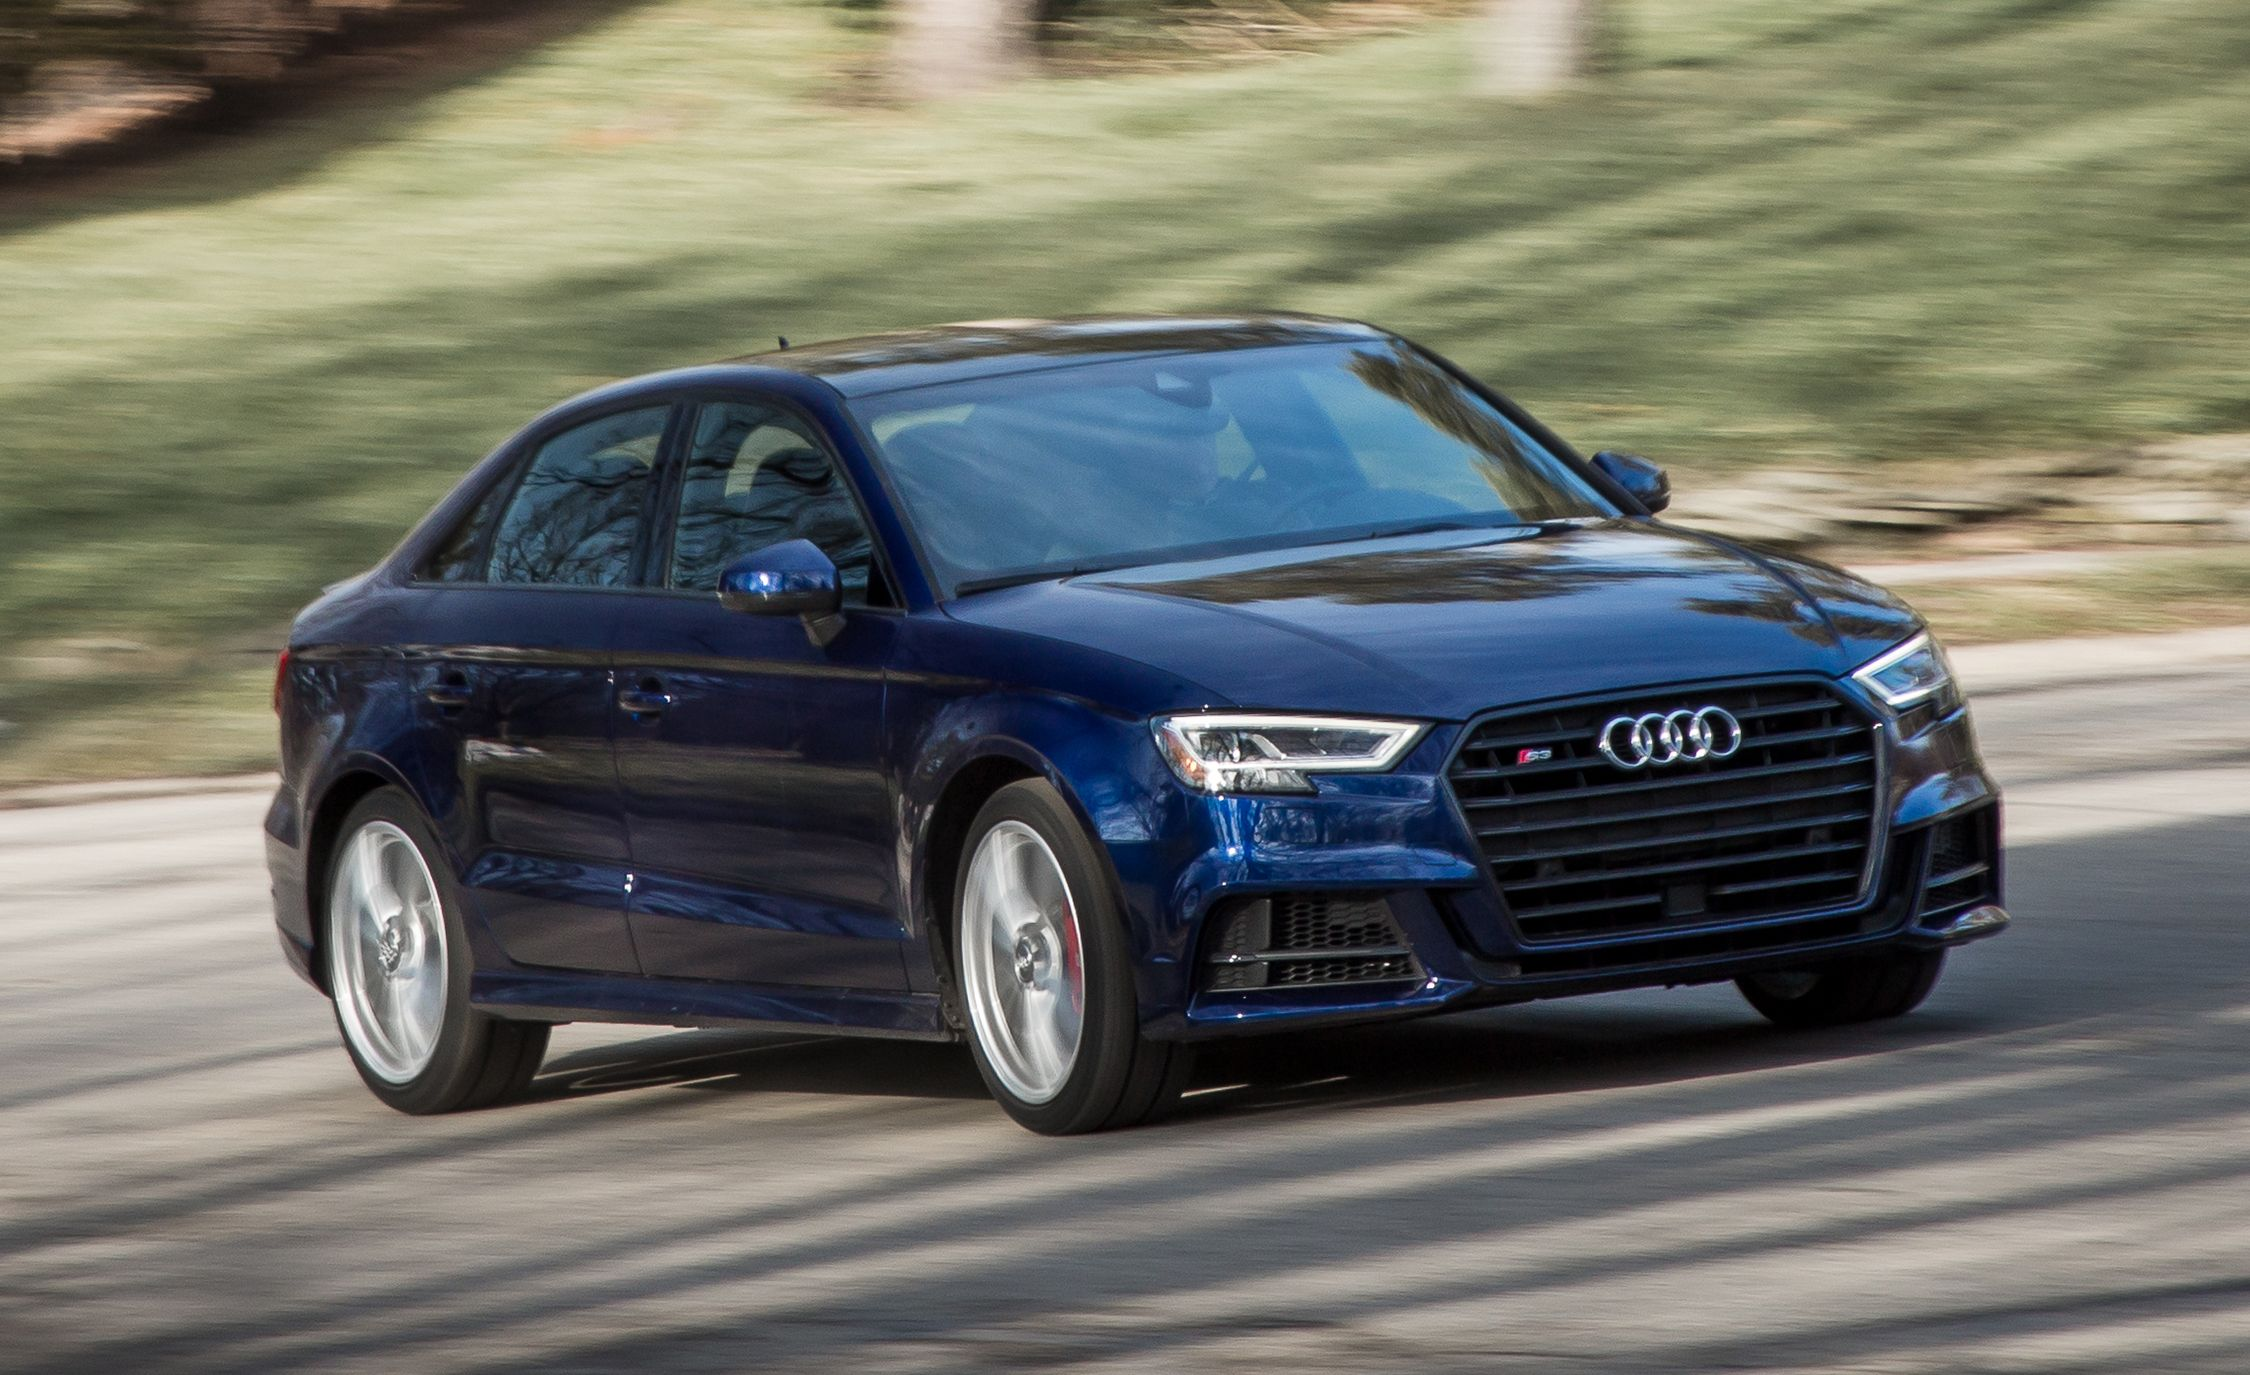 2015 Audi S3 Sedan Instrumented Test | Review | Car and Driver